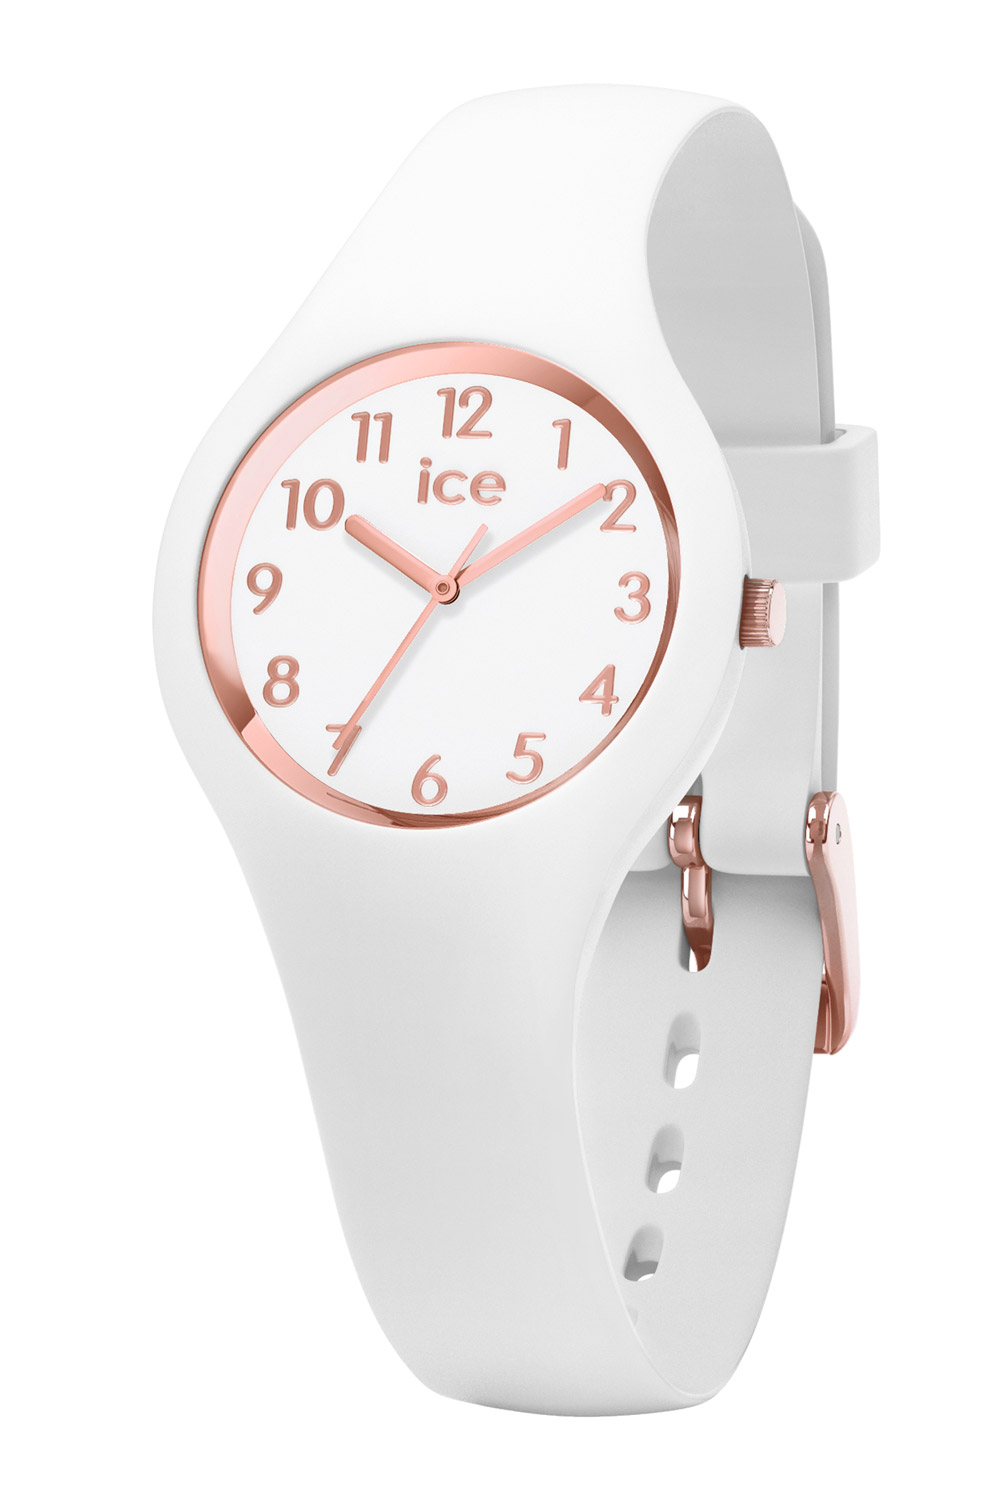 ice watch uhren 10 bar wasserdicht seite 2 uhrcenter shop